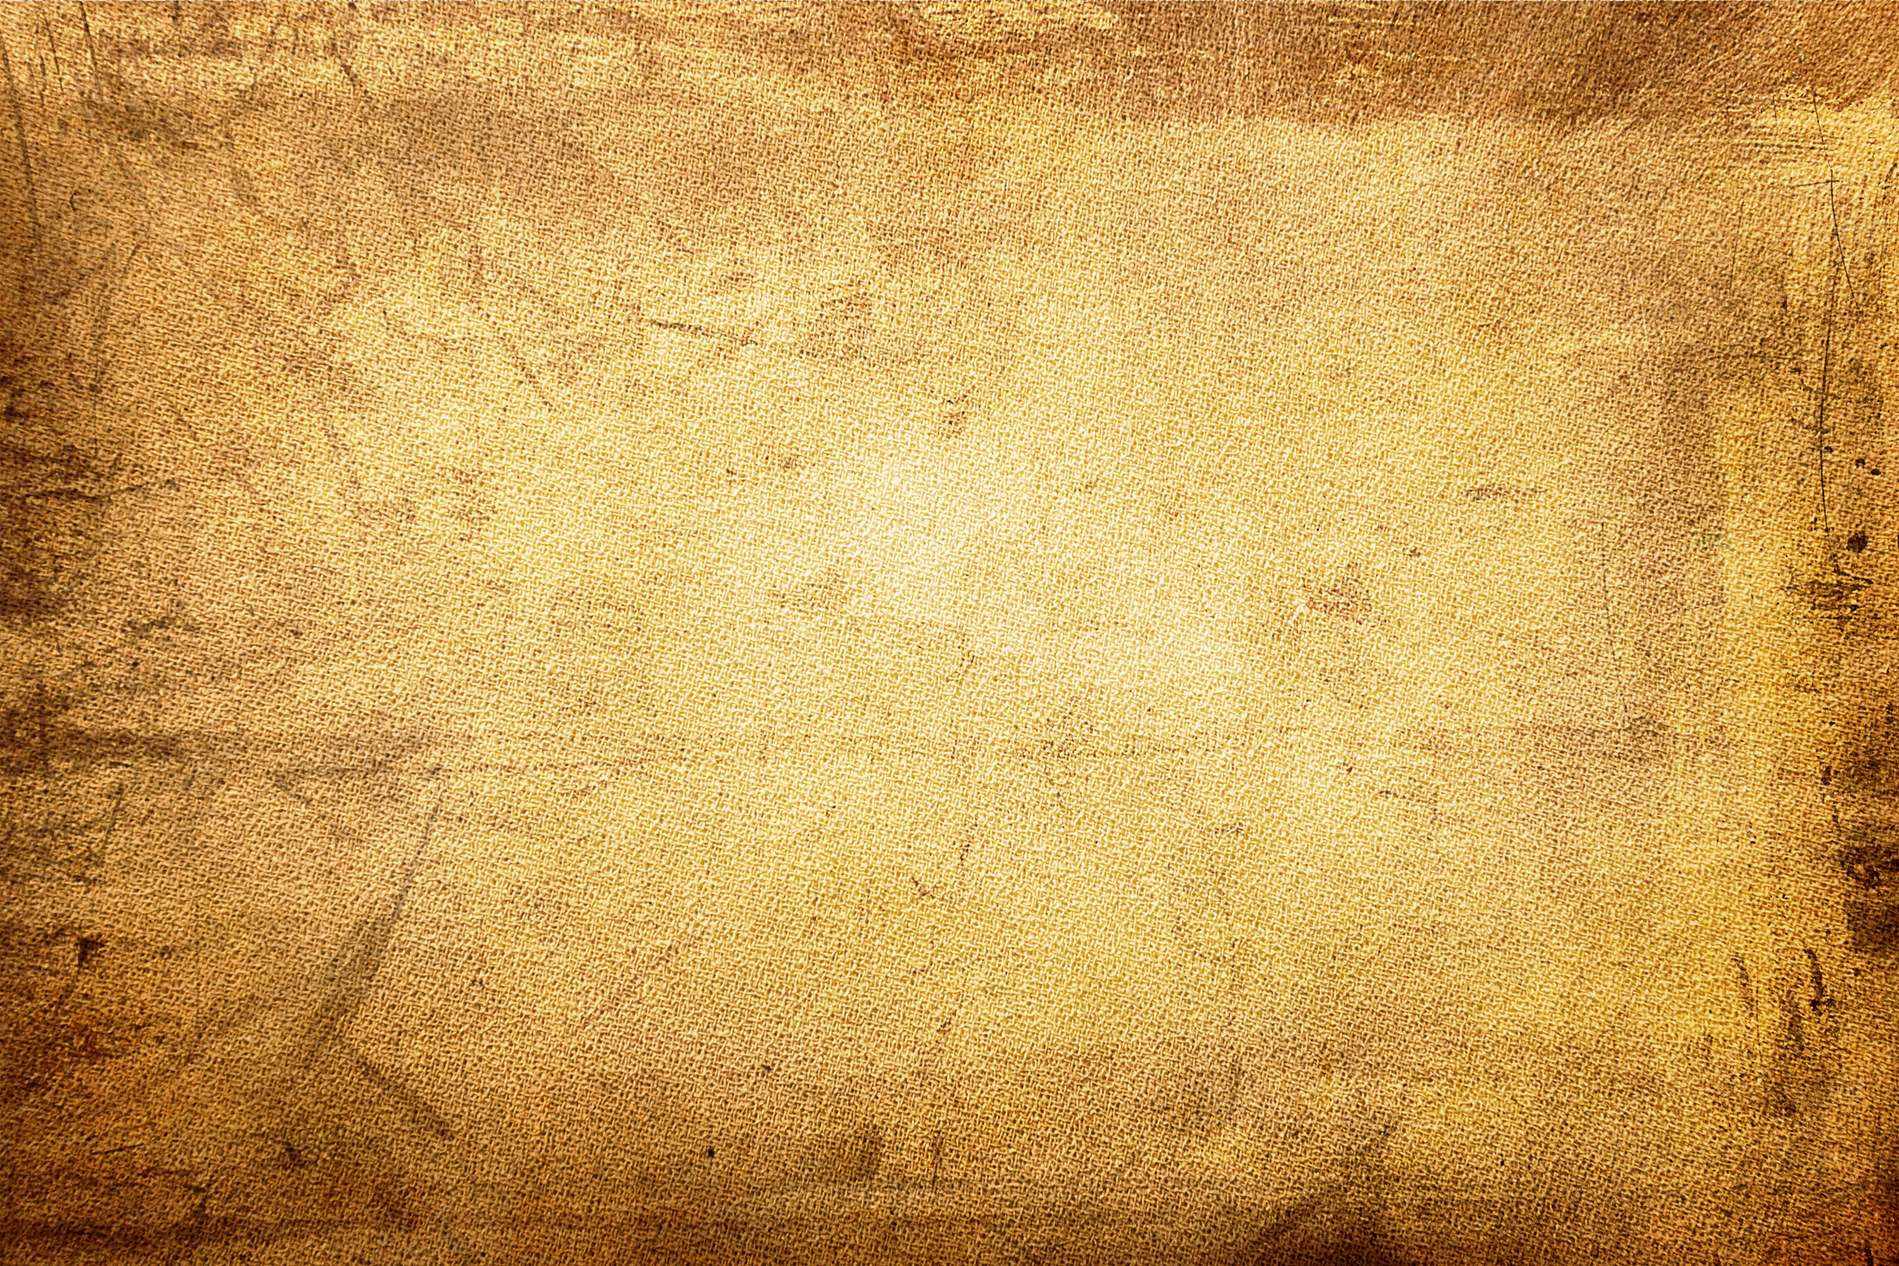 Yellow Vintage Fabric Texture Background PhotoHDX : yellow vintage fabric texture background from www.photohdx.com size 1187 x 792 jpeg 370kB